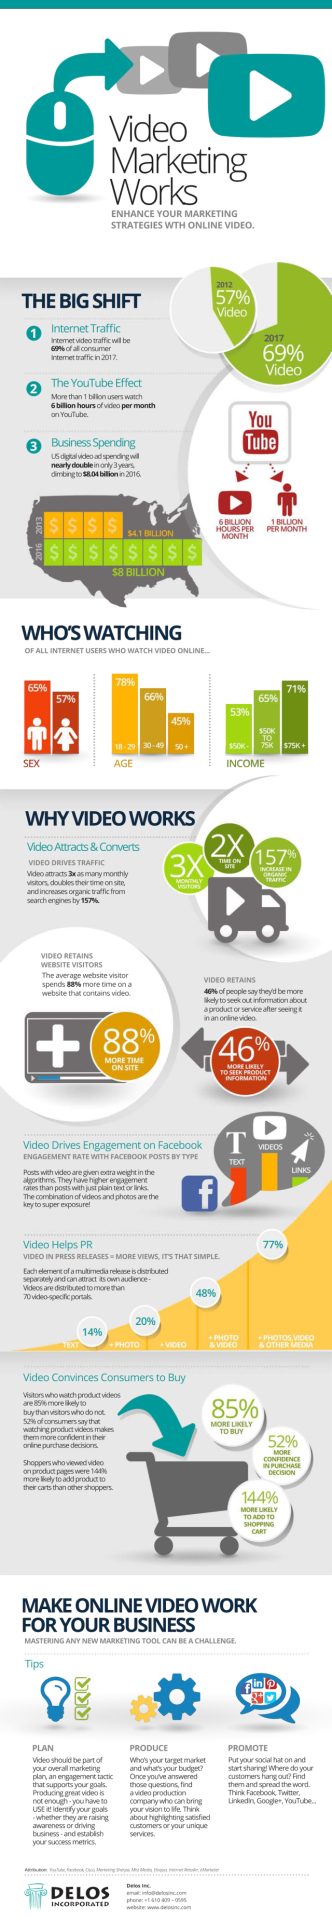 #Video #Marketing & How it Improves Sales & #SEO for #SMM | http://www.pinterest.com/pin/160159330474050322 | #Infographic #PR #Facebook #Twitter #GooglePlus @AJLFX | Video-Marketing-SEO-Infographic-Alejandro-Franceschi